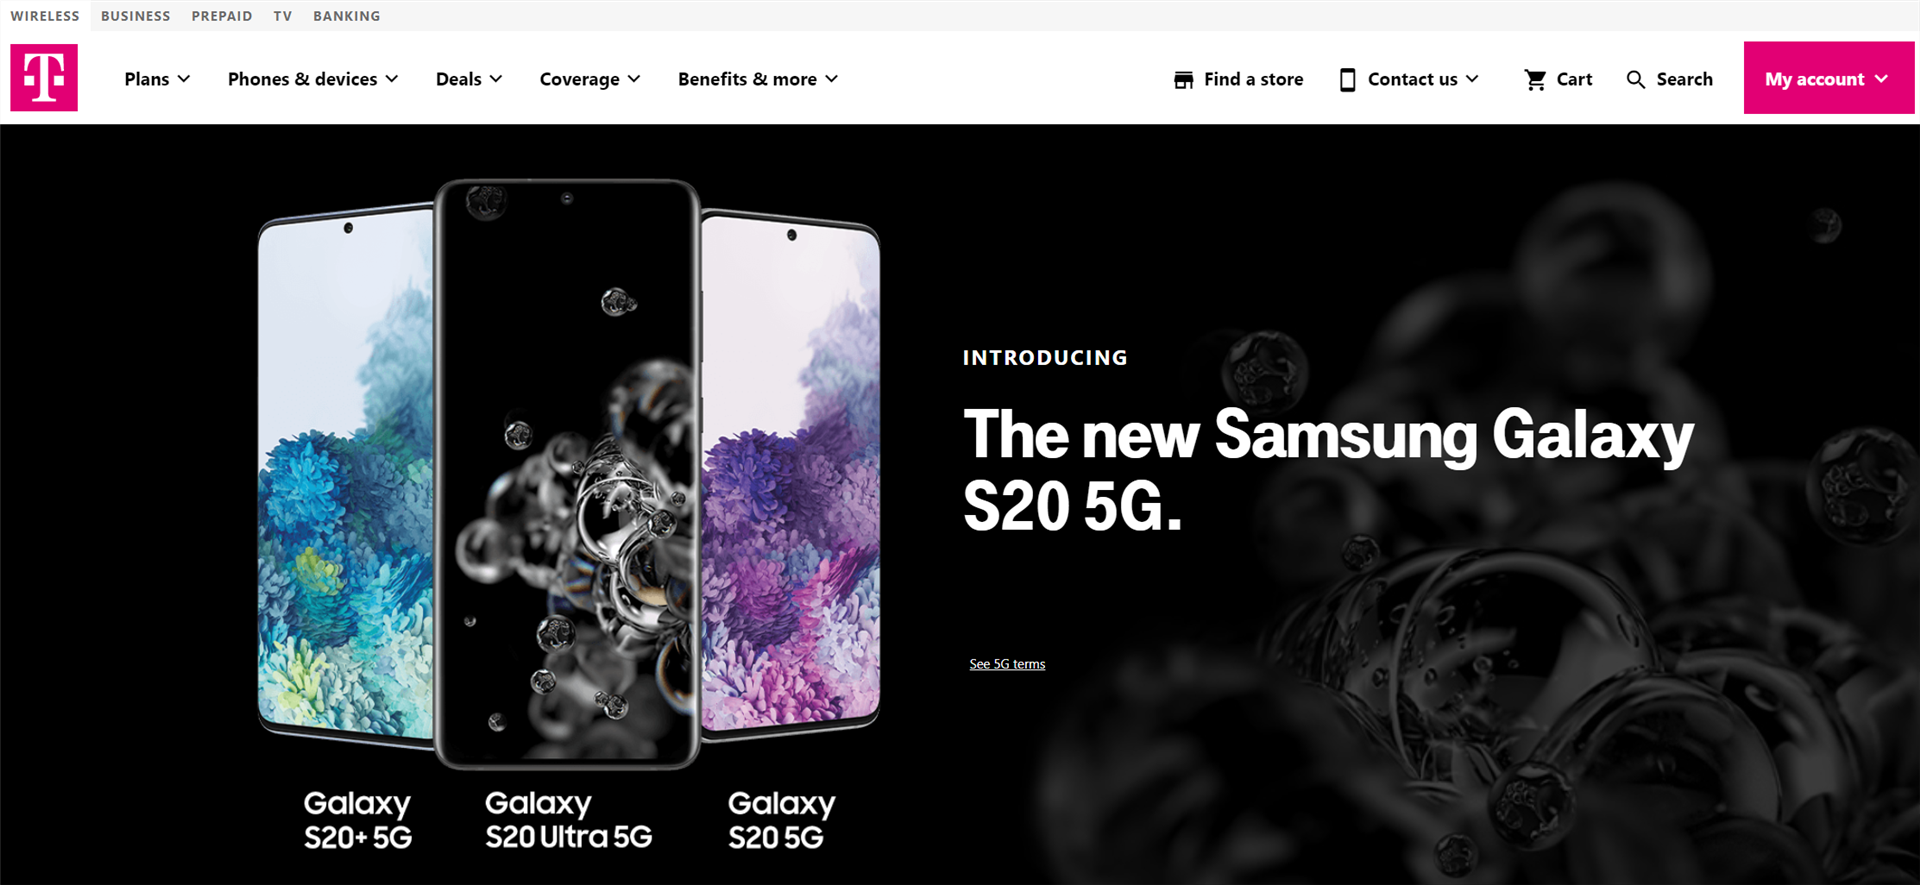 T-Mobile Galaxy S20 Preorder Page